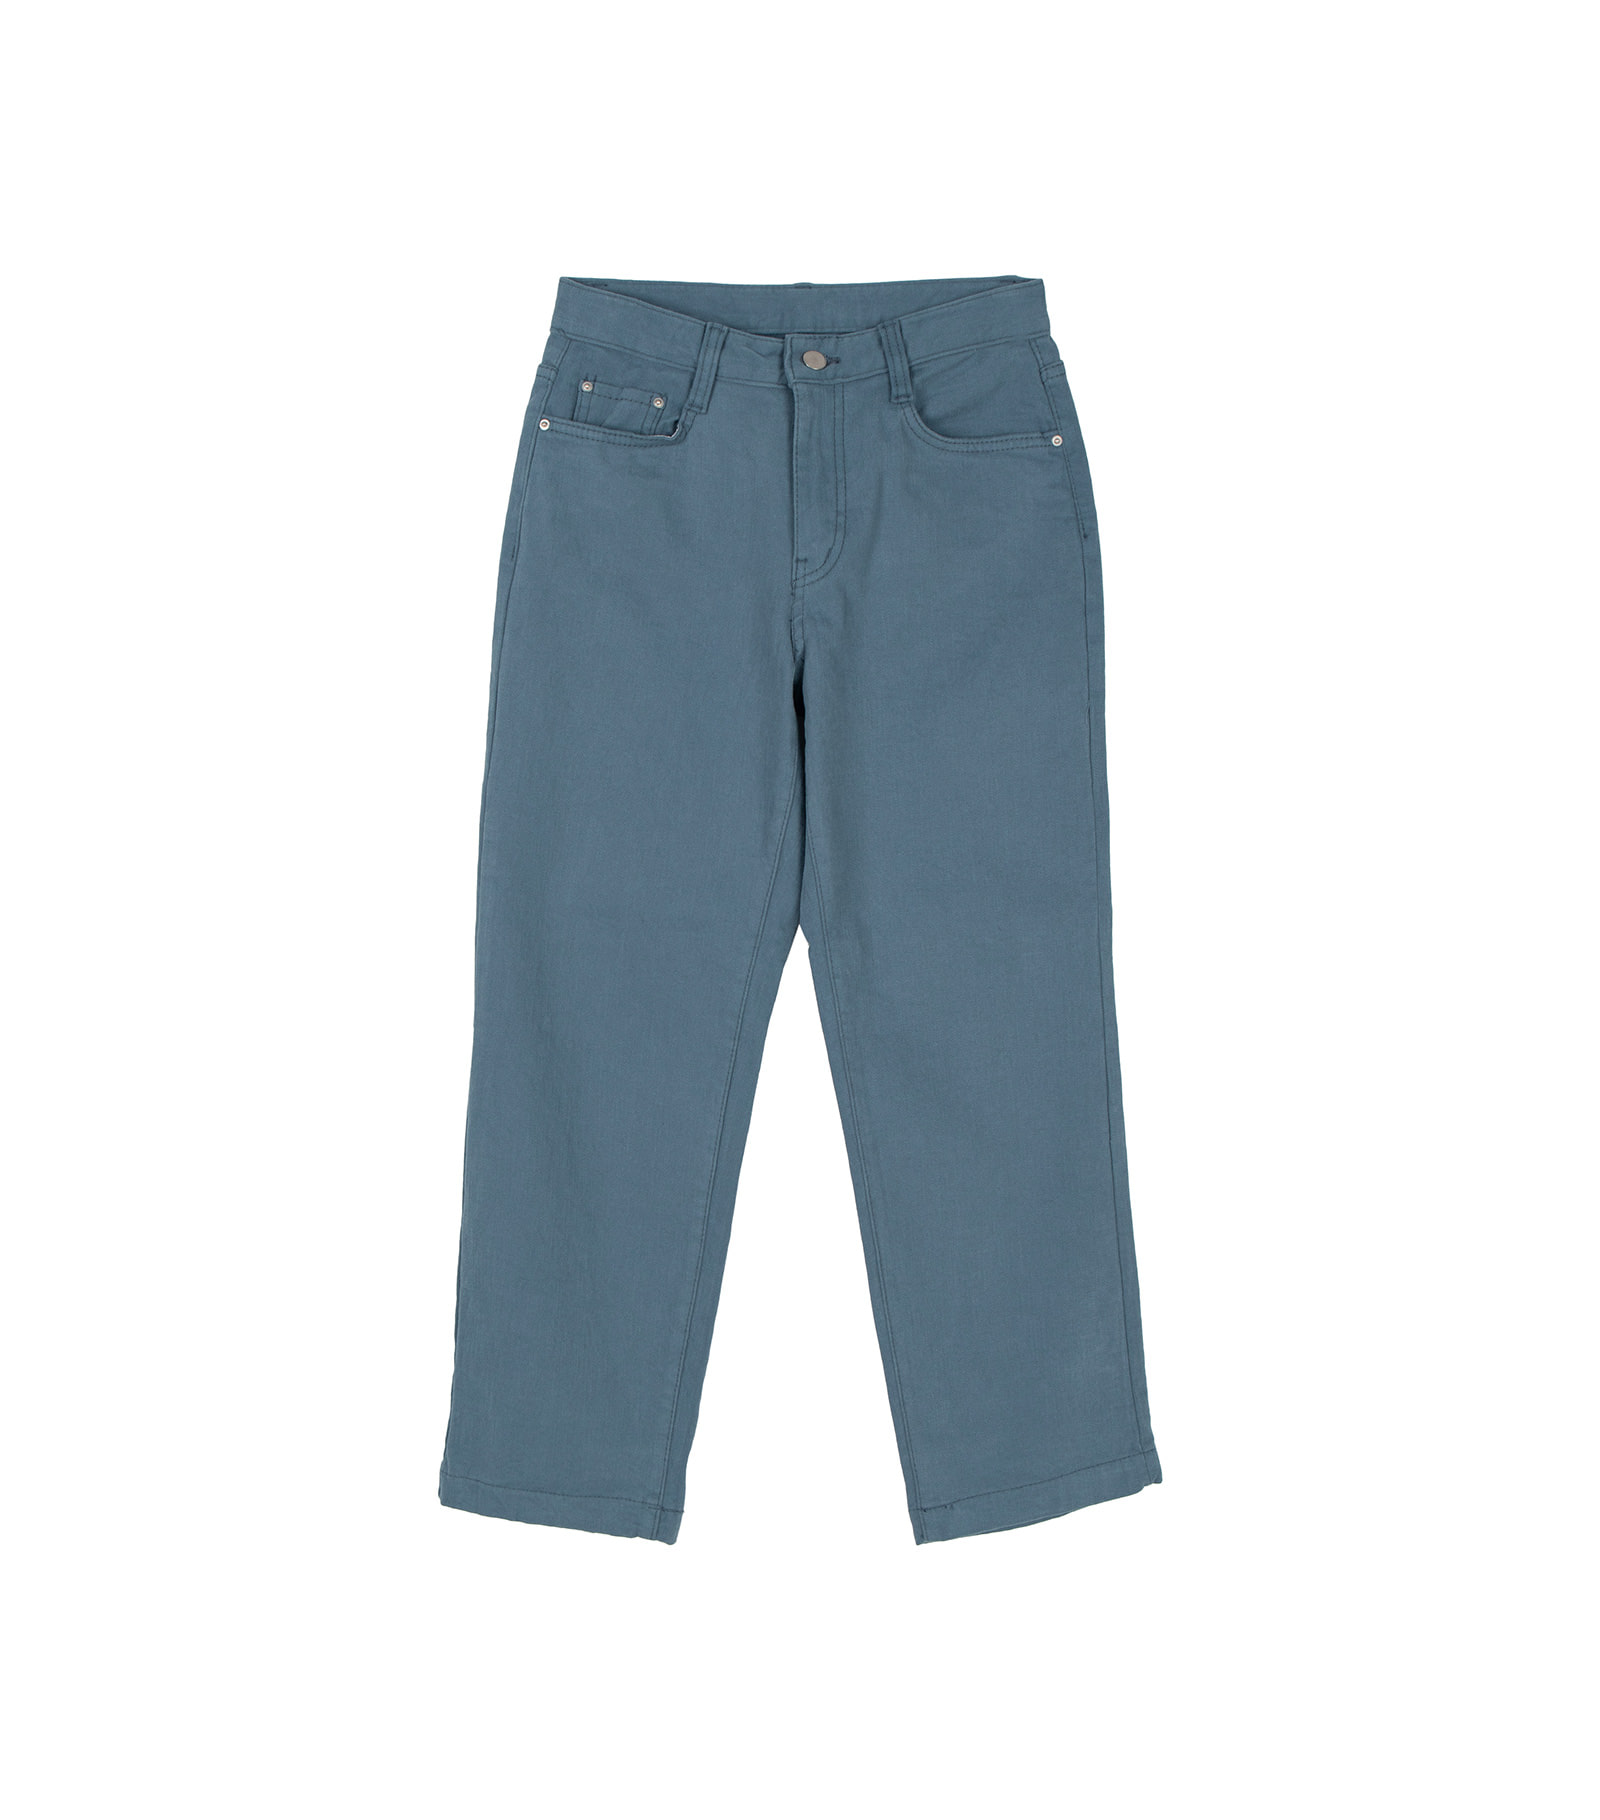 Ms. brushed straight pants